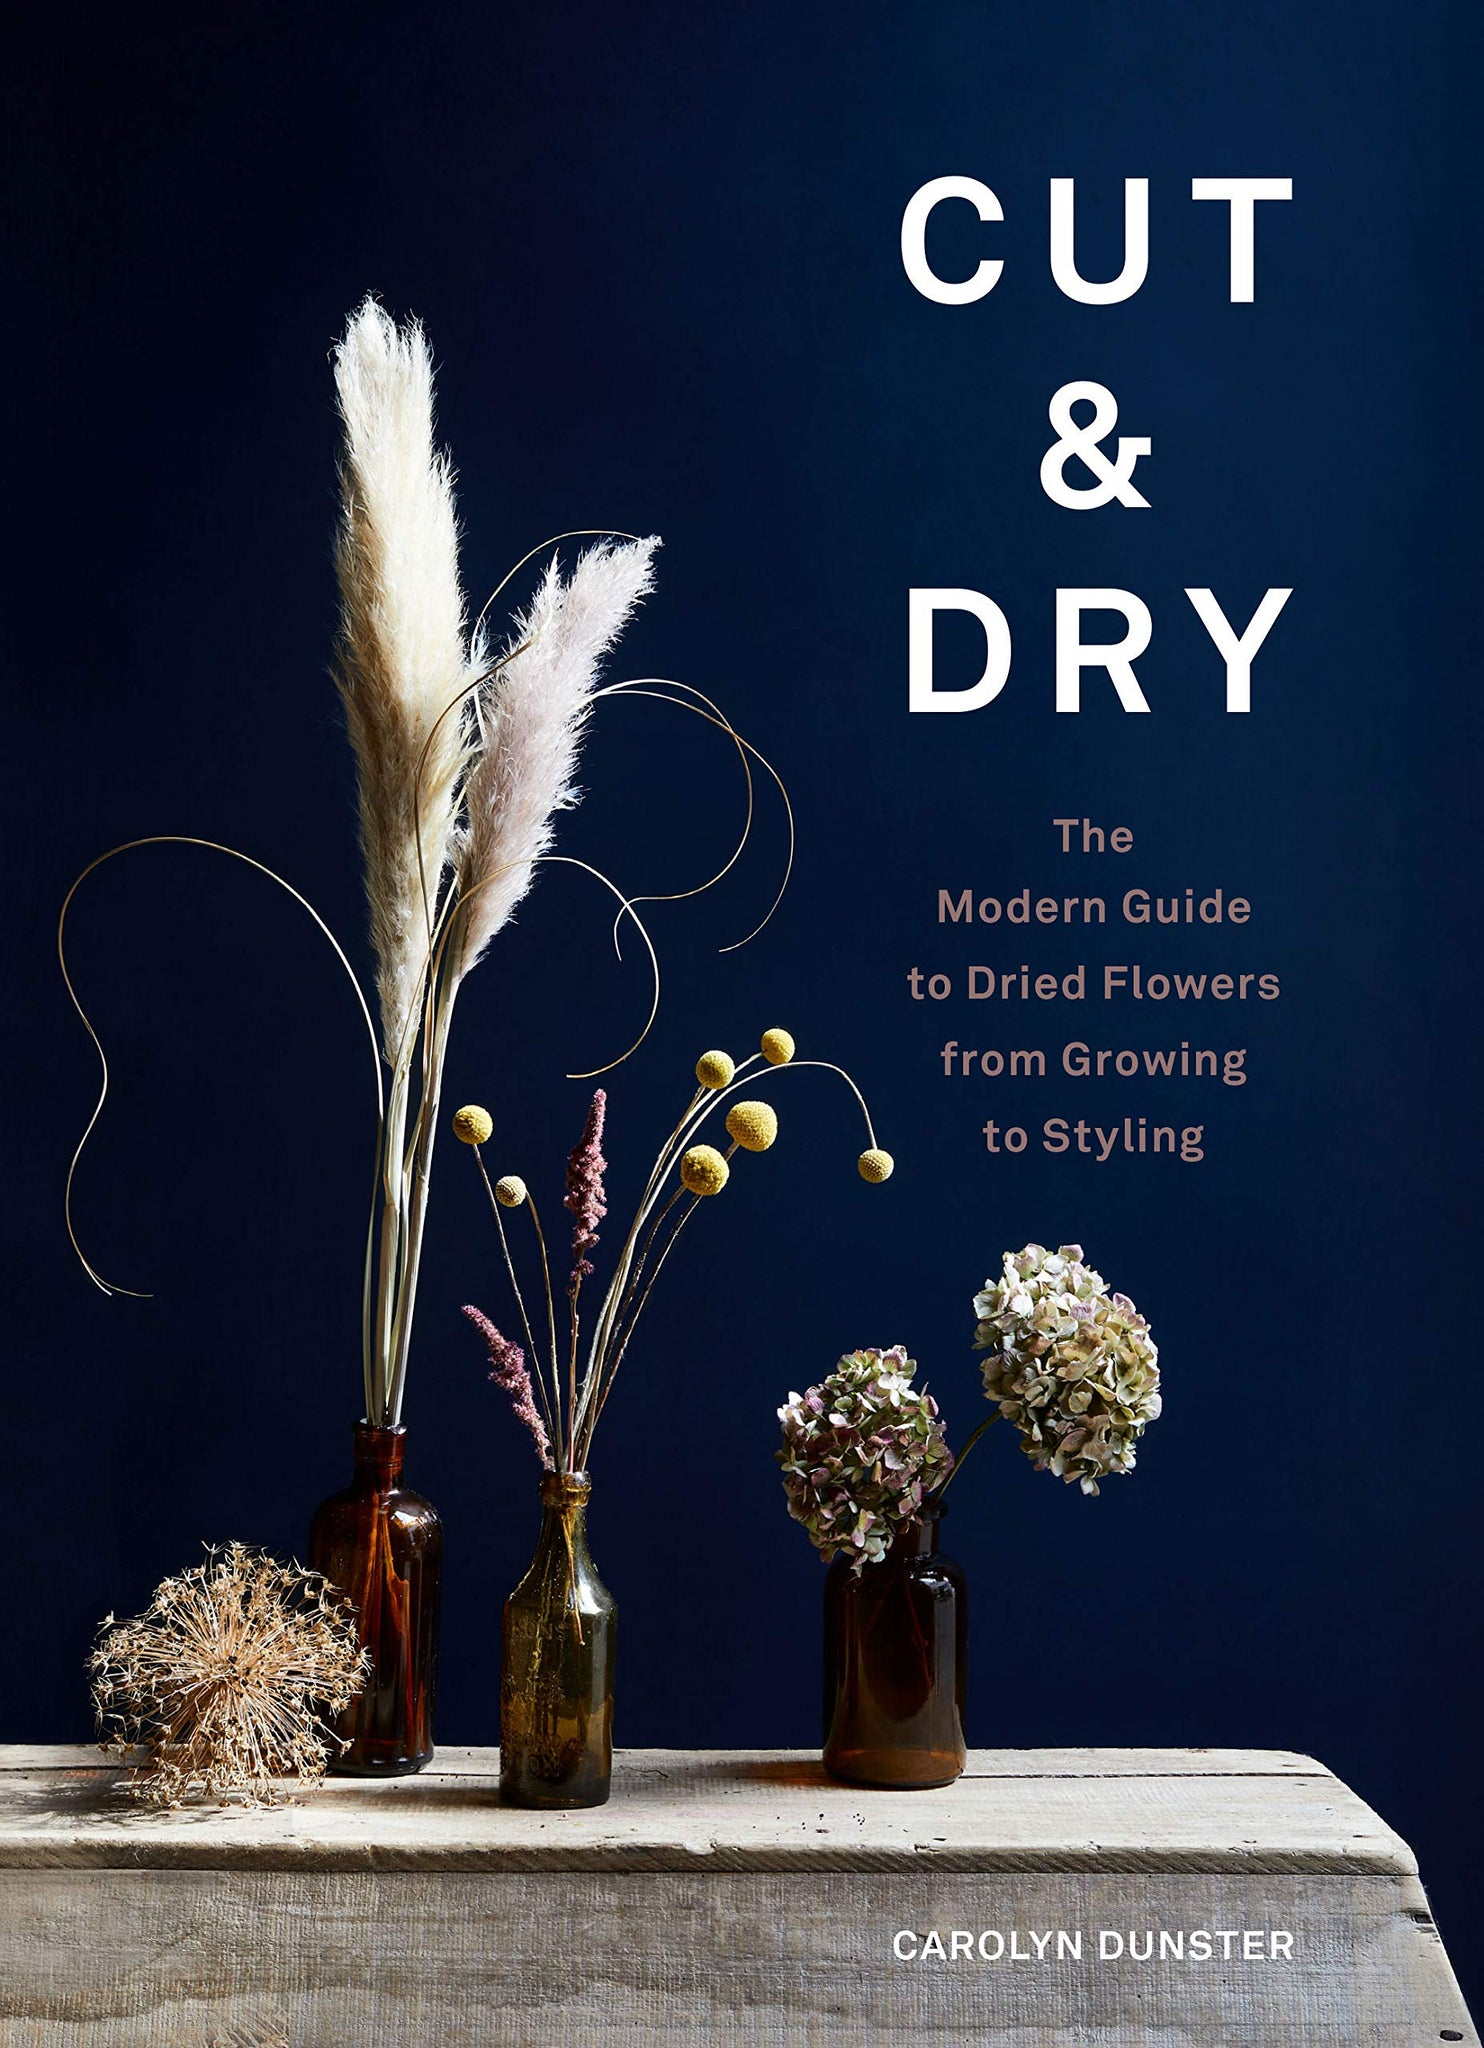 Cut & Dry: The Modern Guide to Dried Flowers from Growing to Styling